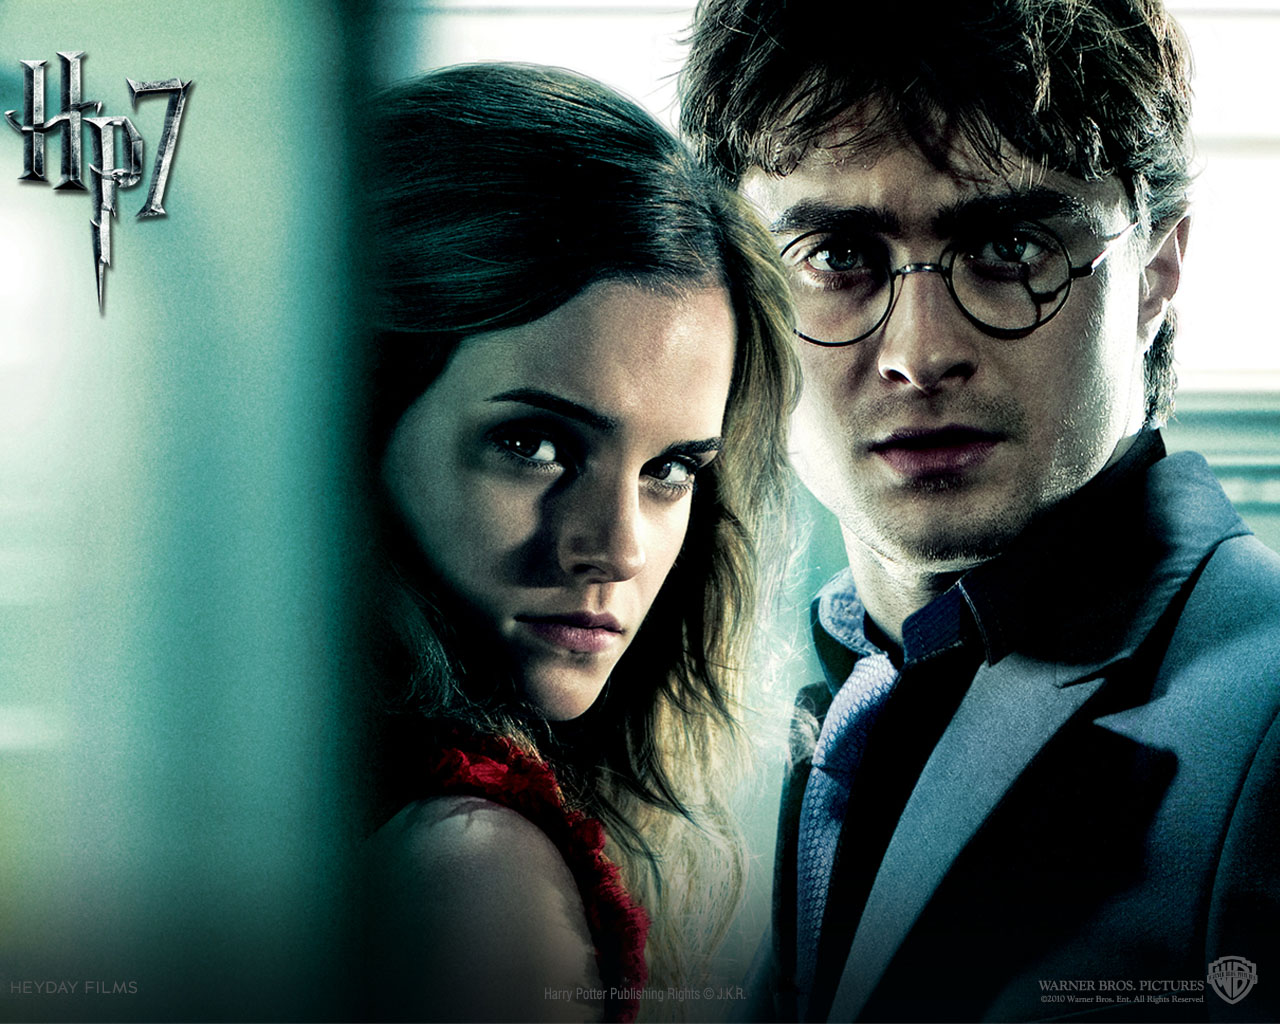 http://2.bp.blogspot.com/_MC9XvQiuf24/TOCRb2kuYKI/AAAAAAAAPkM/YDZte_p_afQ/s1600/harry_potter_e_as_reliquias_da_morte_papel_de_parede_3.jpg